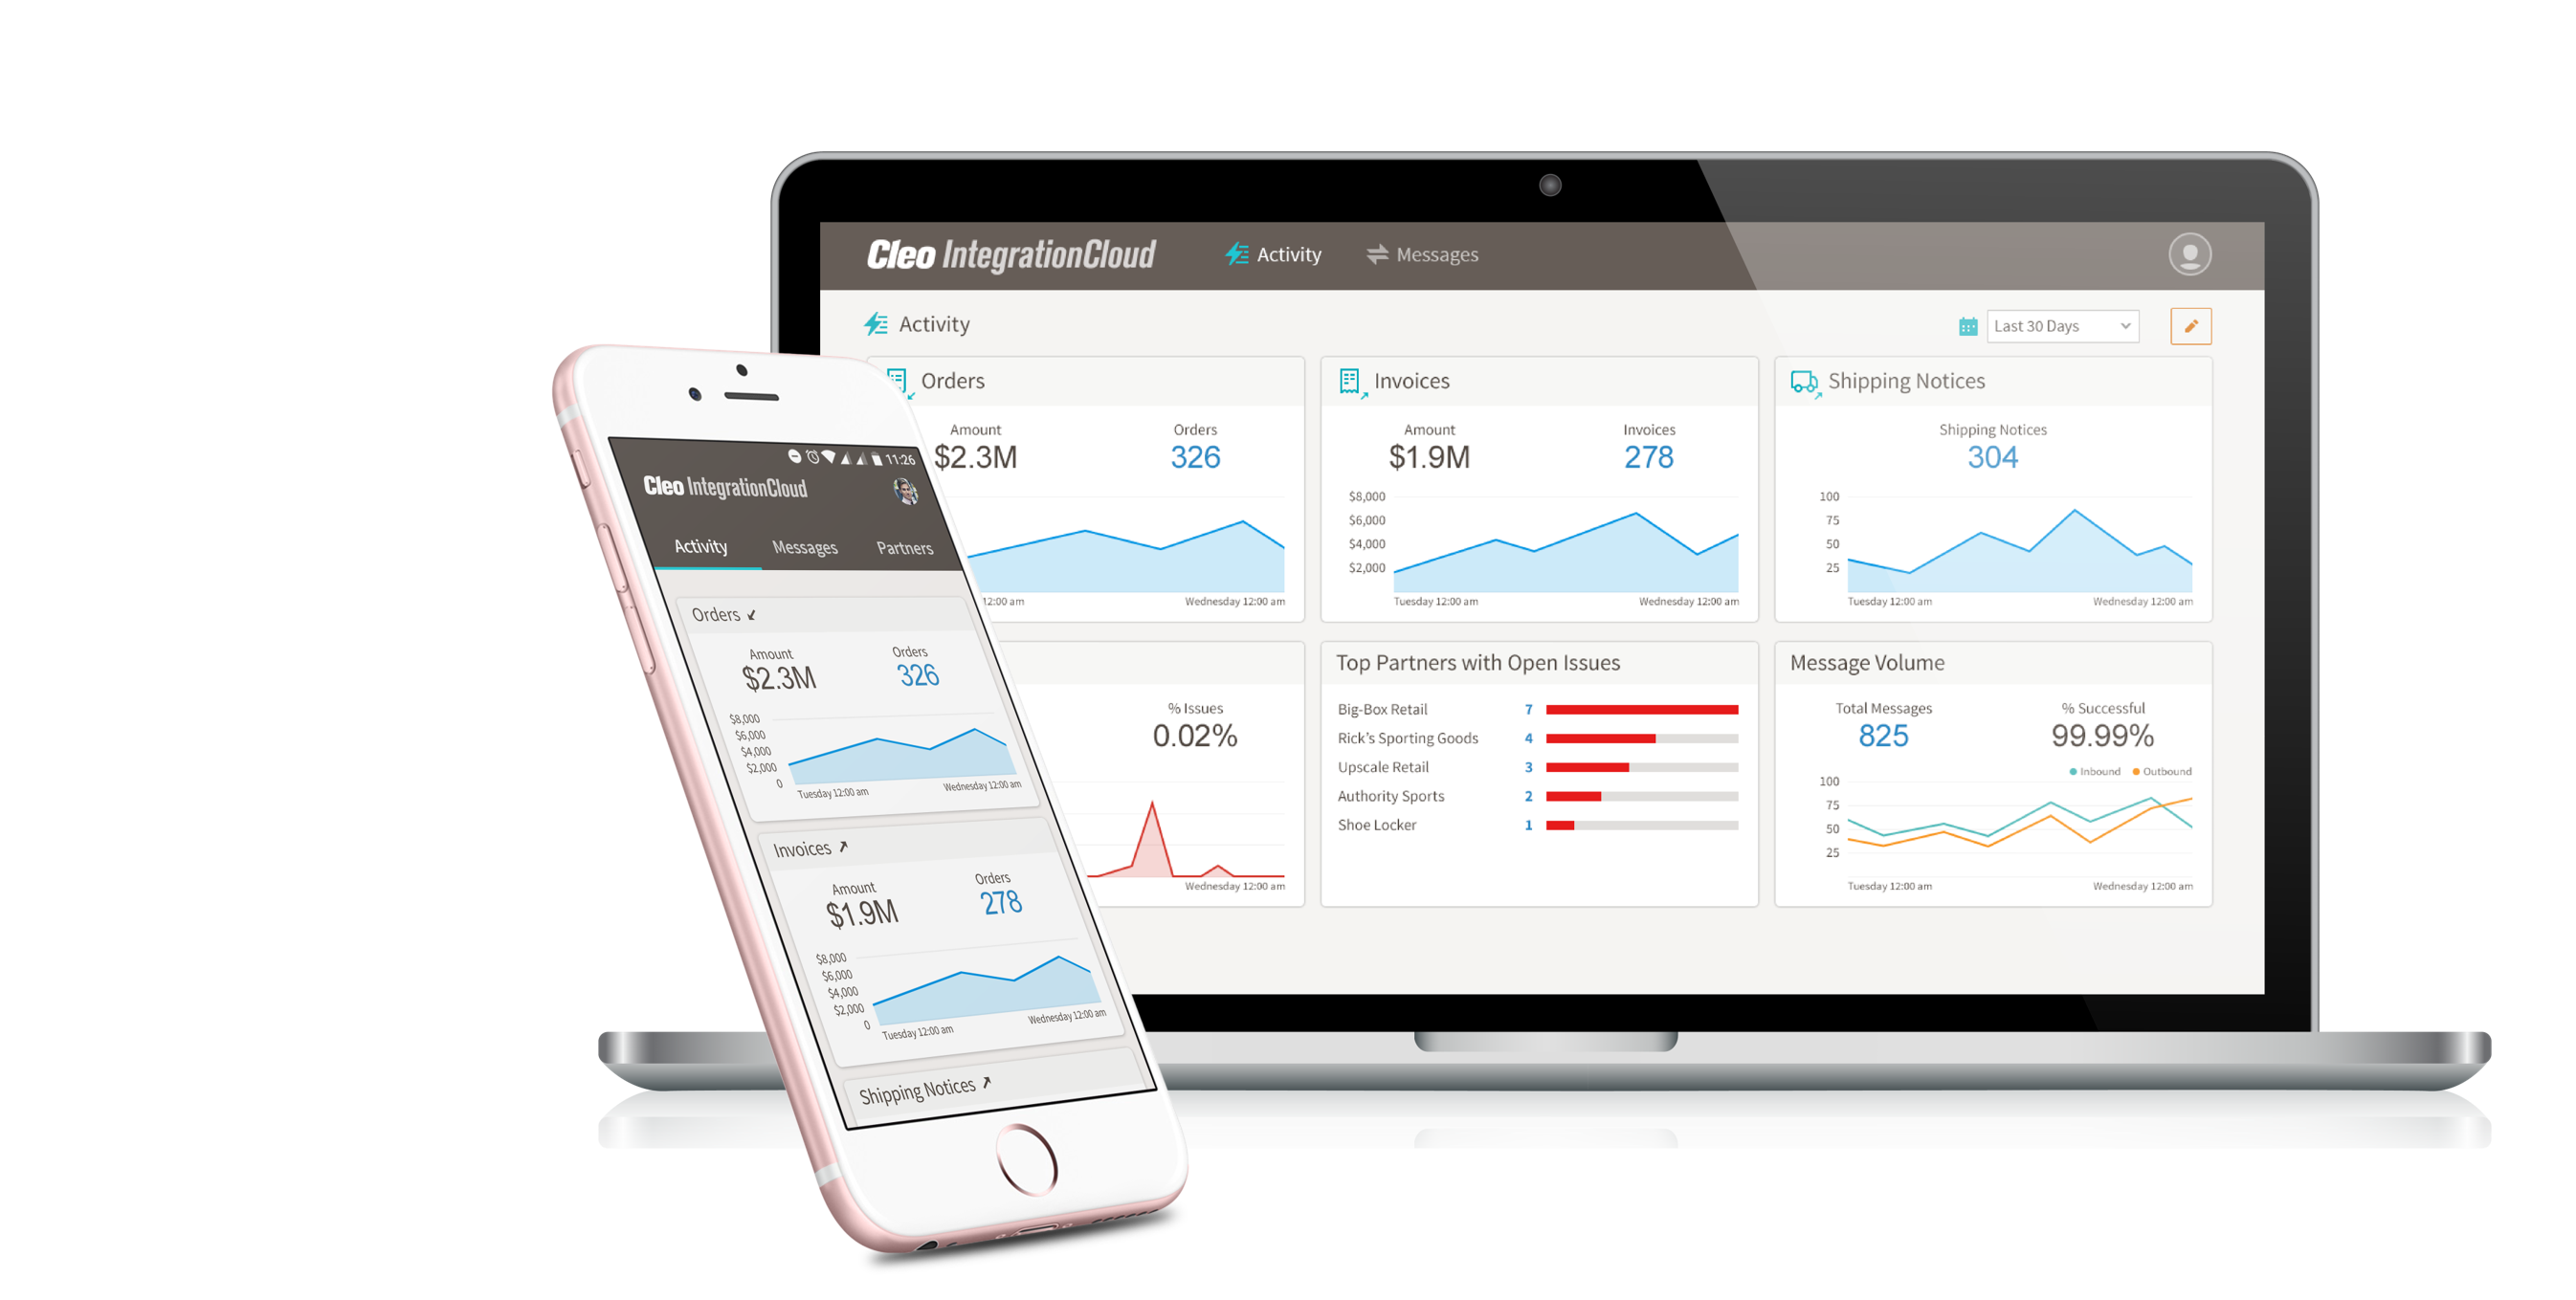 Cleo Integration Cloud - Integration Platform, iPaaS, Application Integration, B2B integration